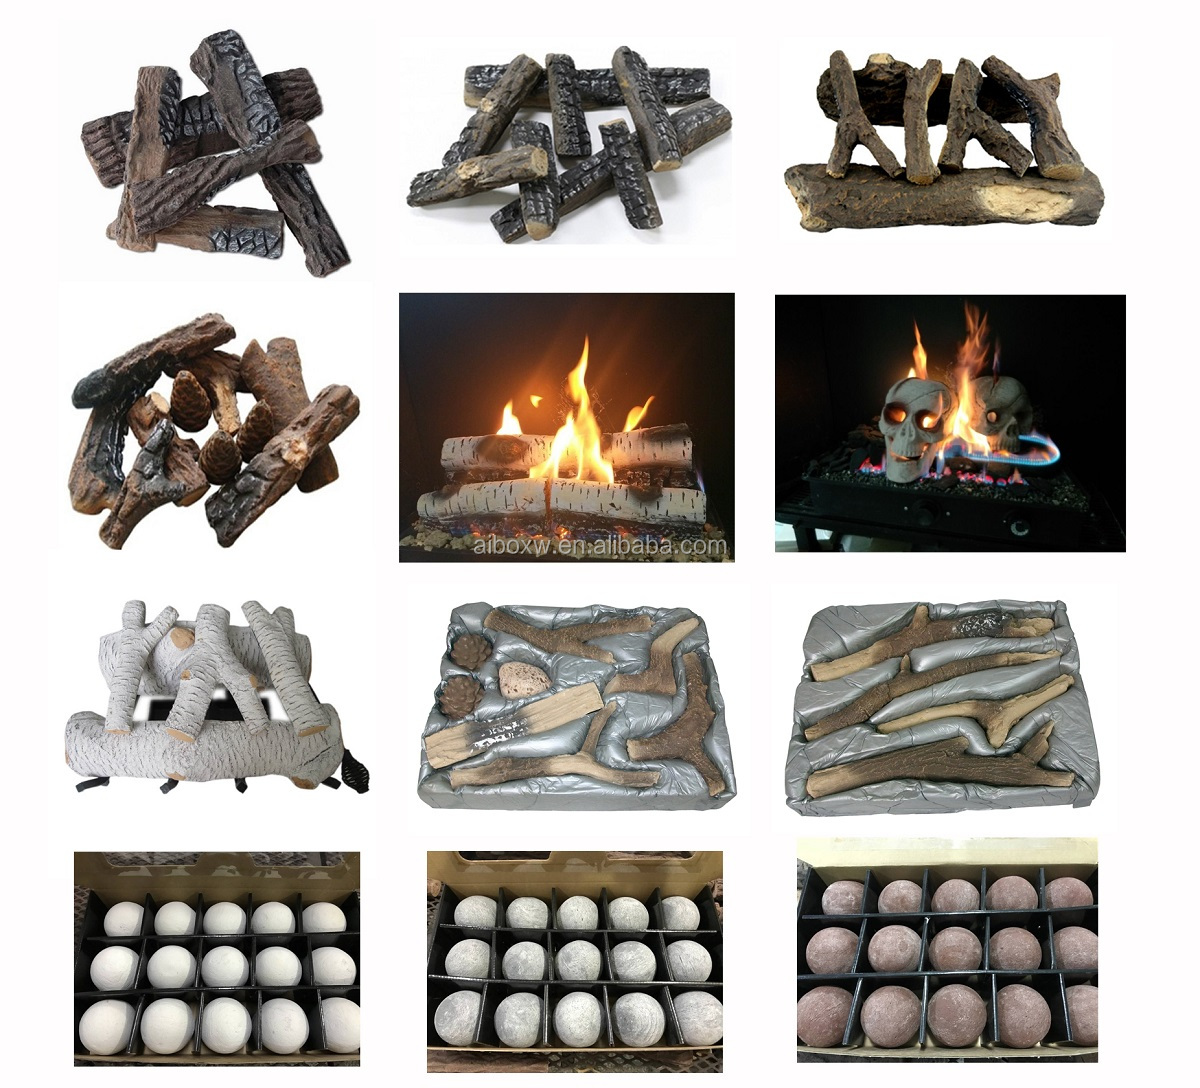 Ebay Popular 10 Pieces Petite Ceramic Wood Fireplace Logs Set S08-48